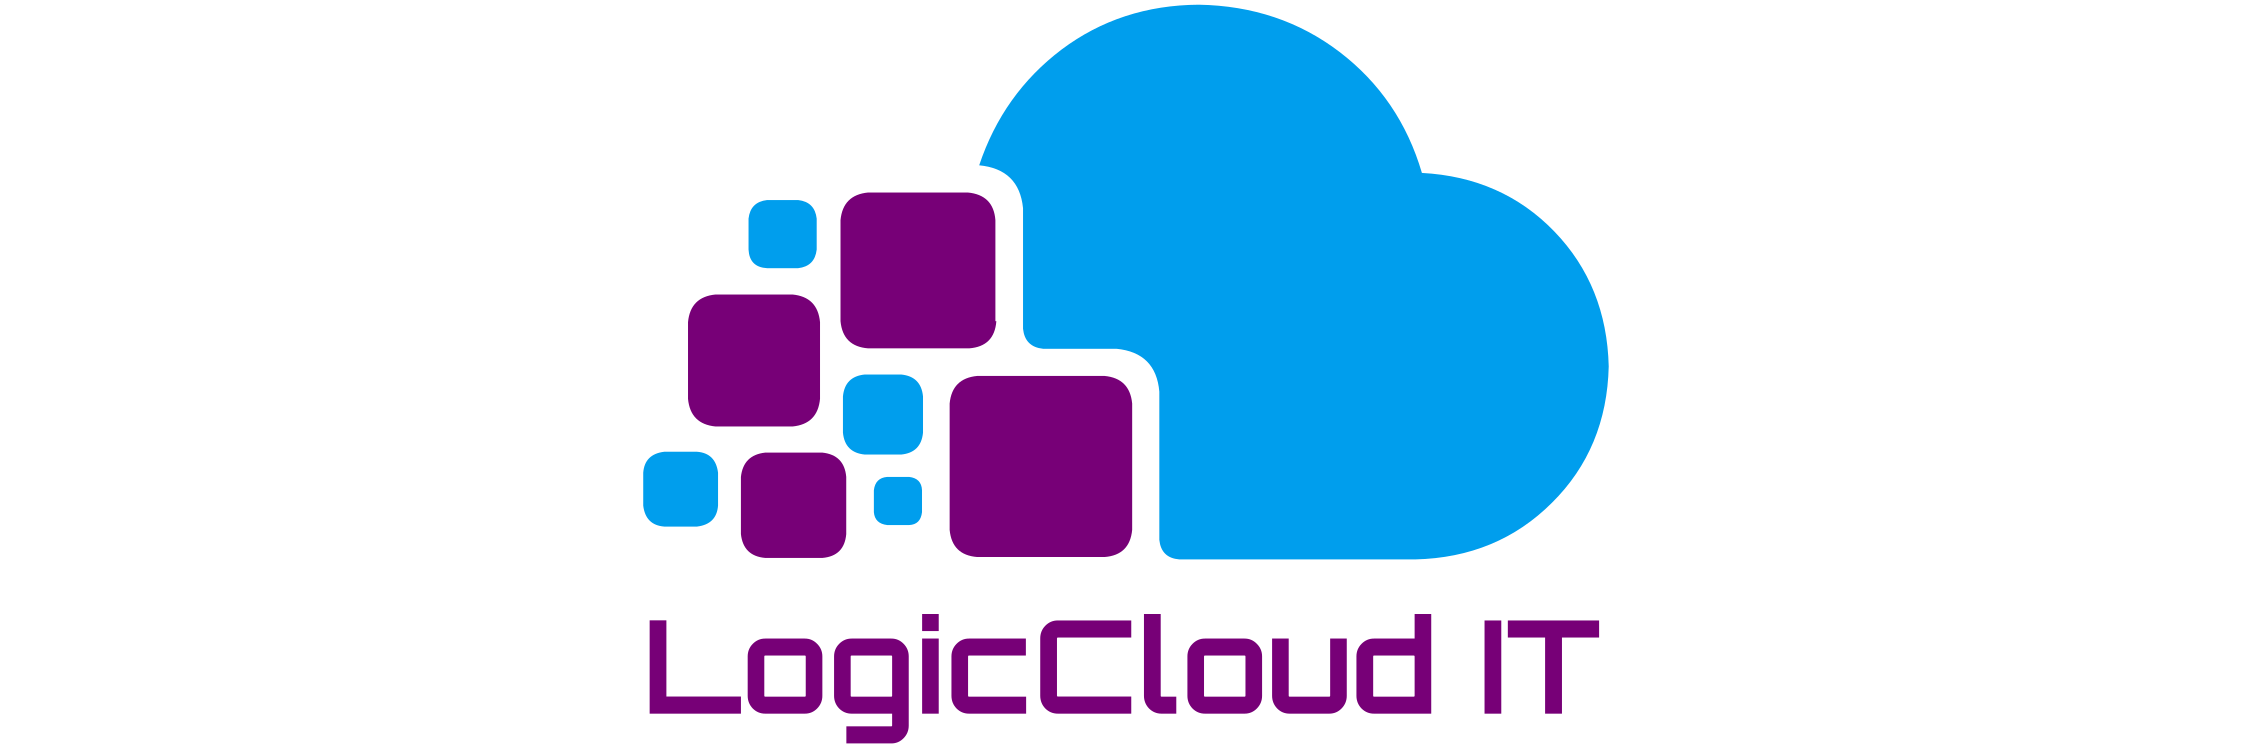 Web Solutions by LogicCloud IT